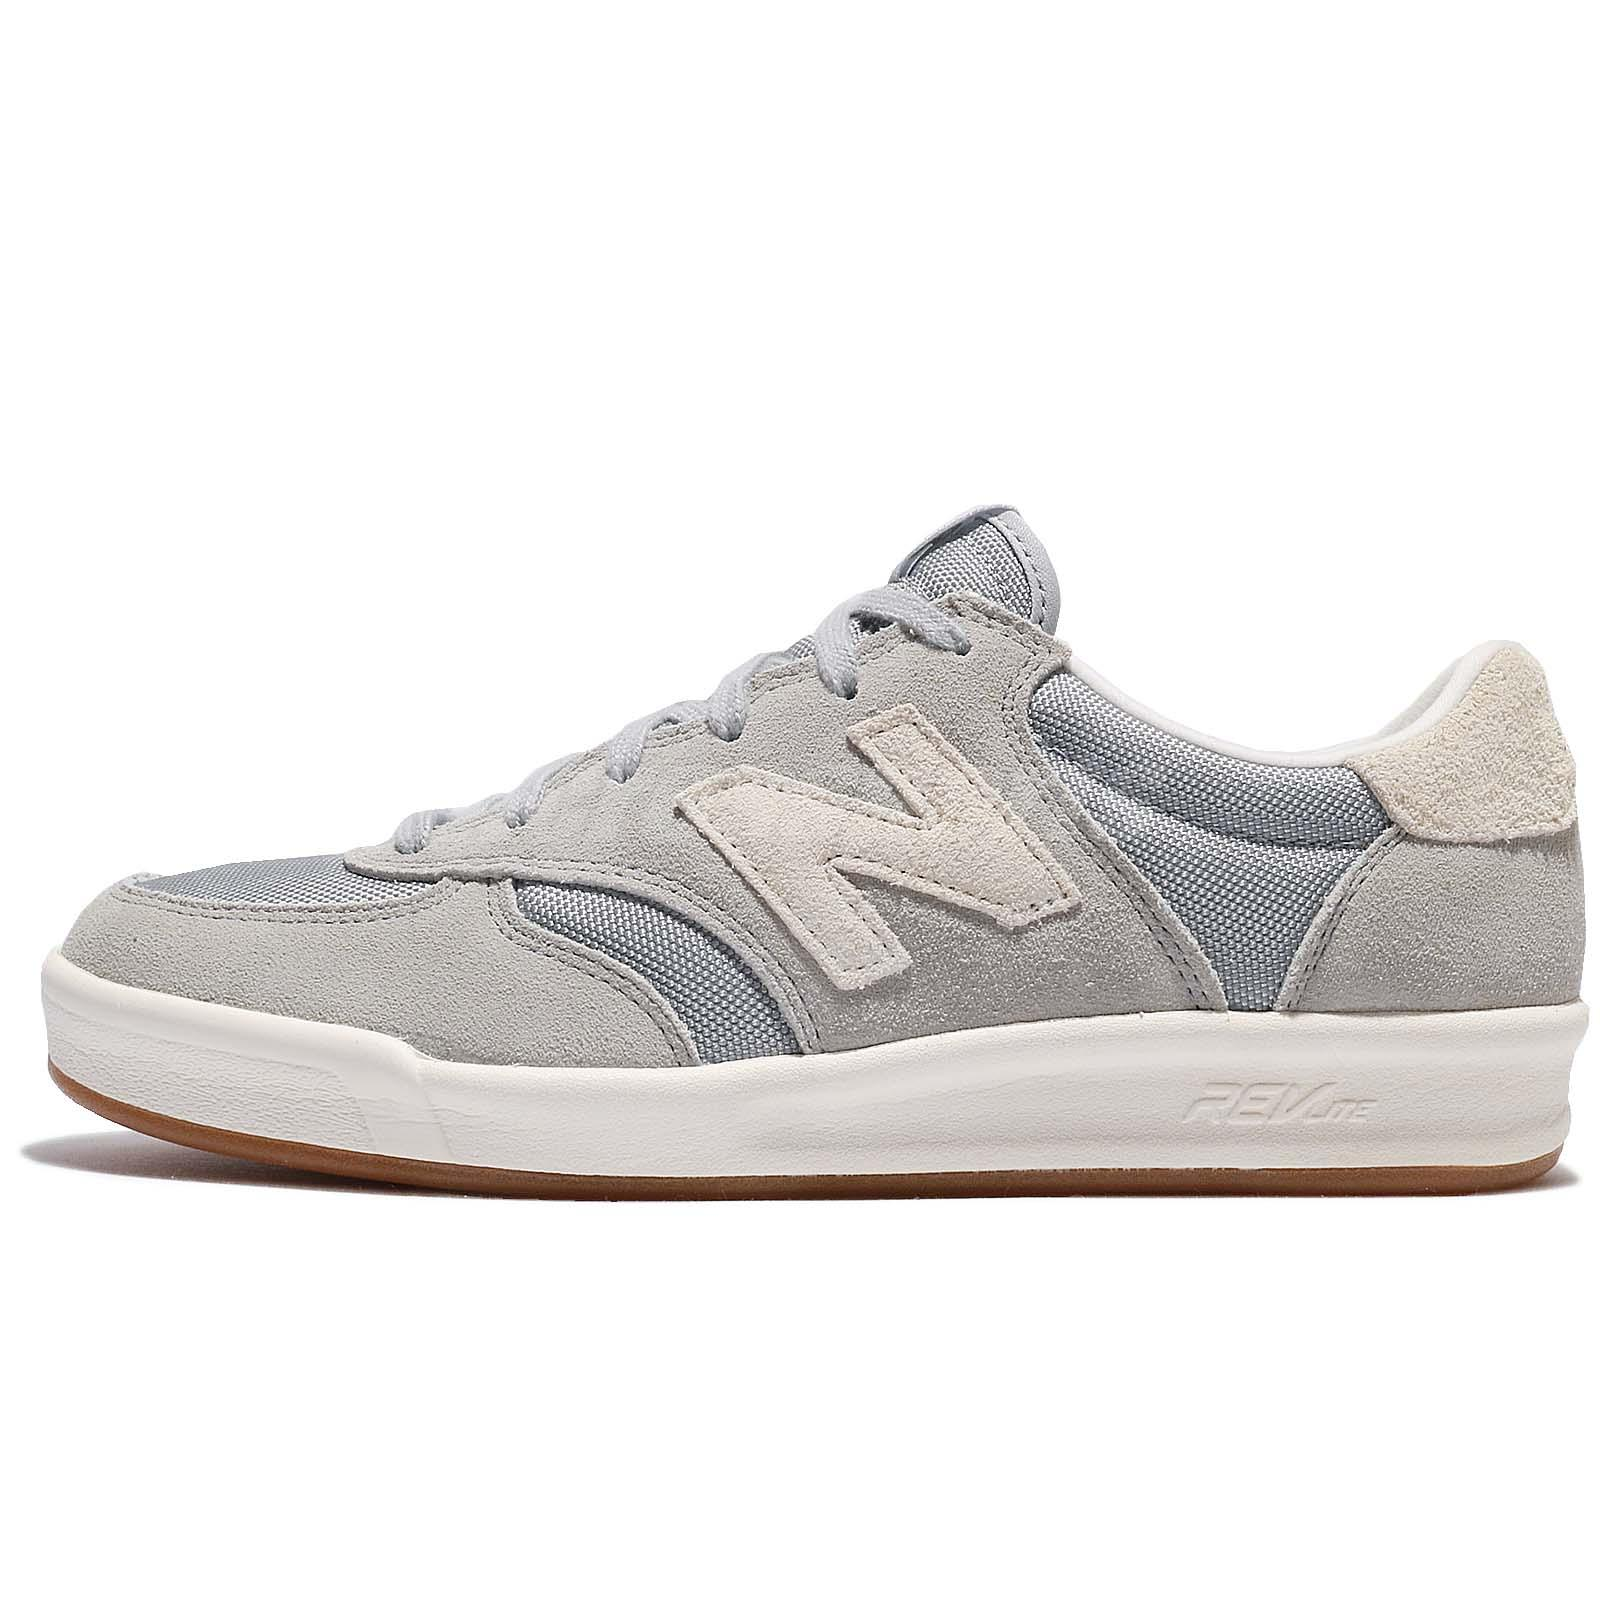 New Balance CRT300SR D LowSuede Grey Ivory Men Shoes Sneakers Trainer CRT300 SRD